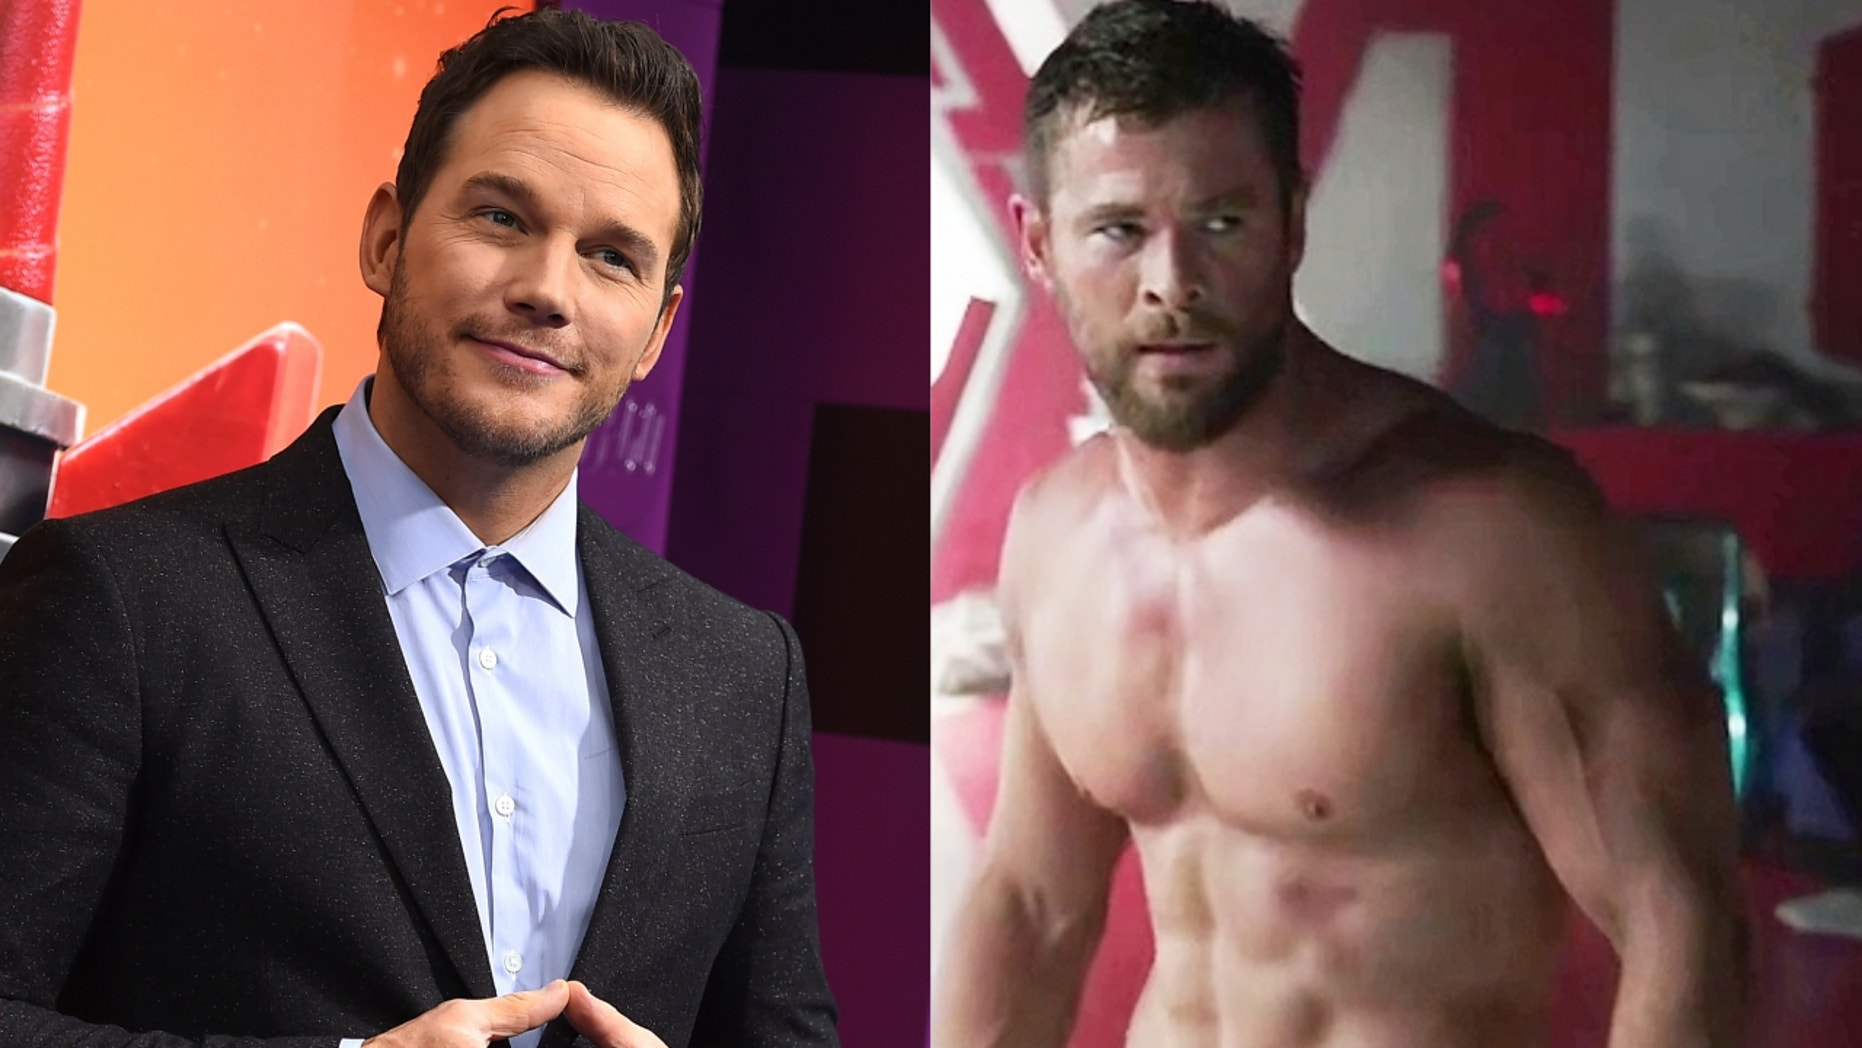 Chris Pratt and Chris Hemsworth